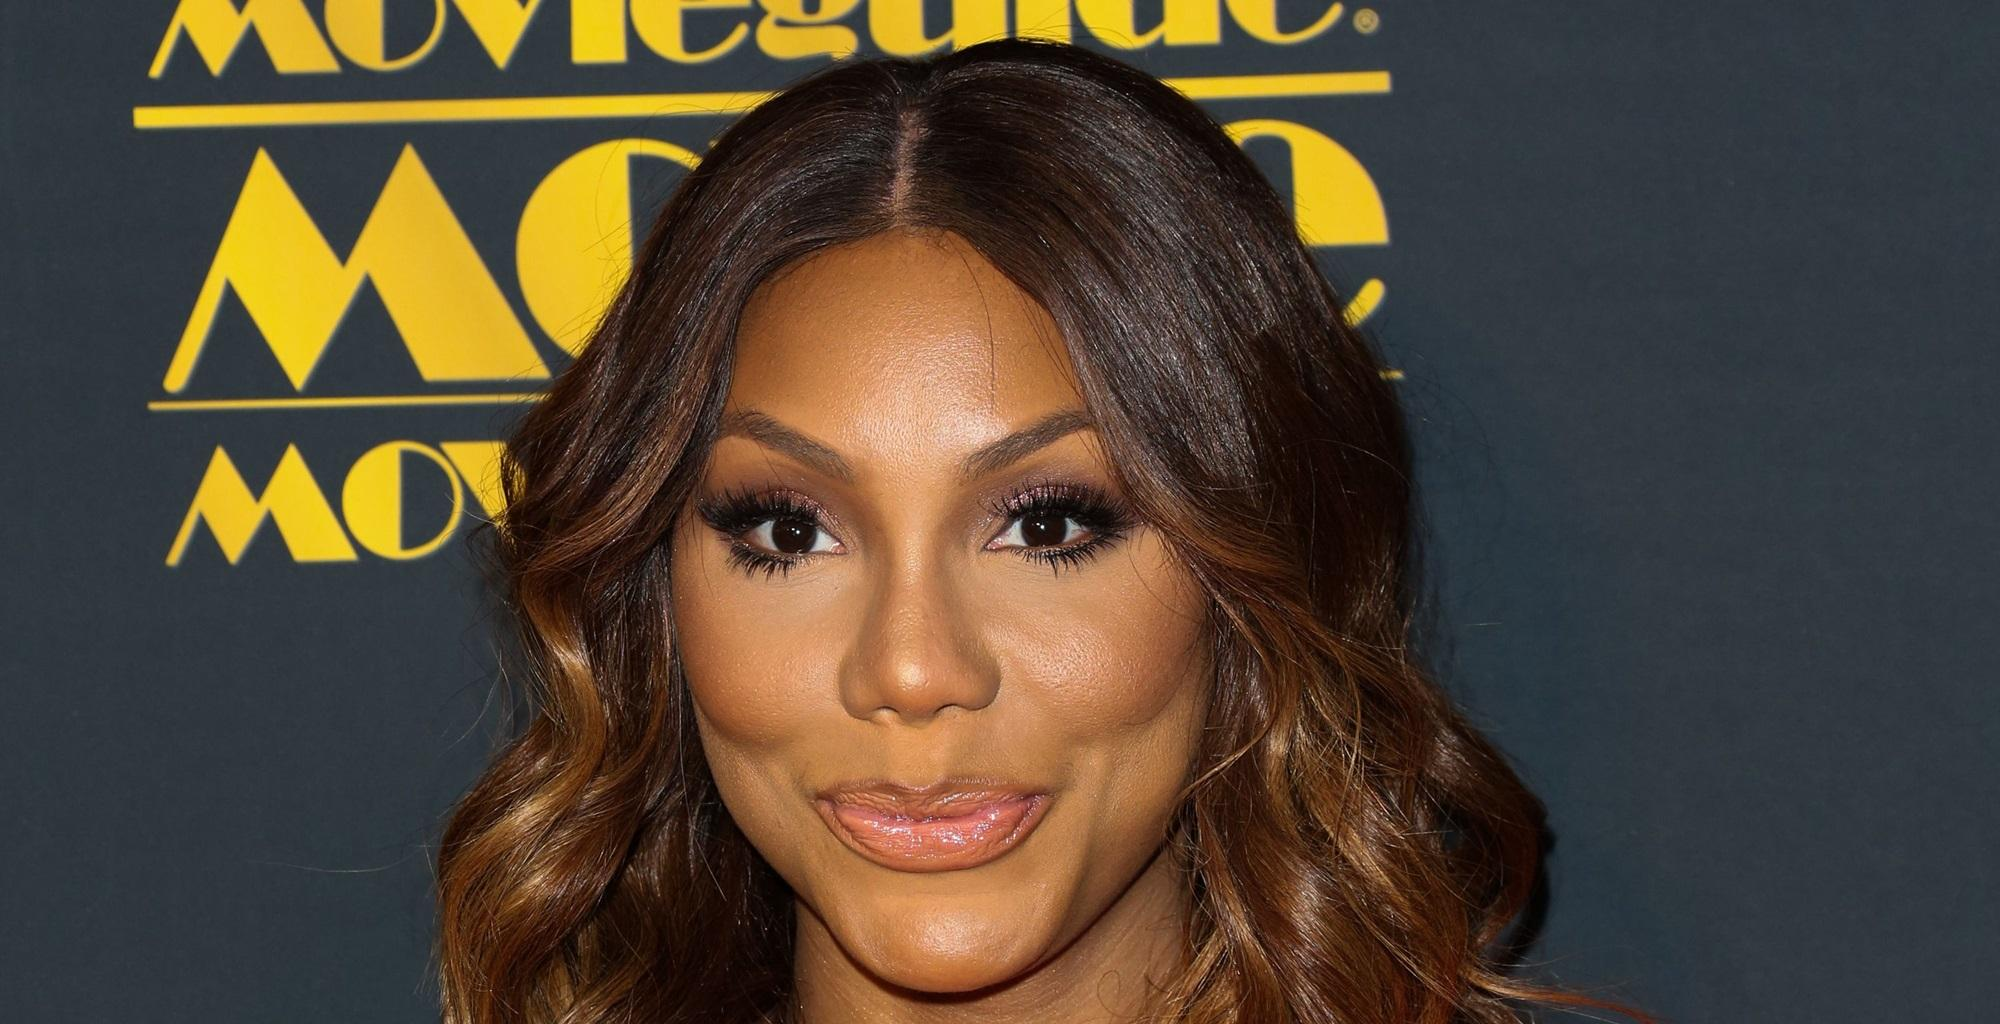 Tamar Braxton Is Forced To Apologize After Being Accused Of Making These Anti-Gay Comments -- Singer Also Defends BF David Adefeso